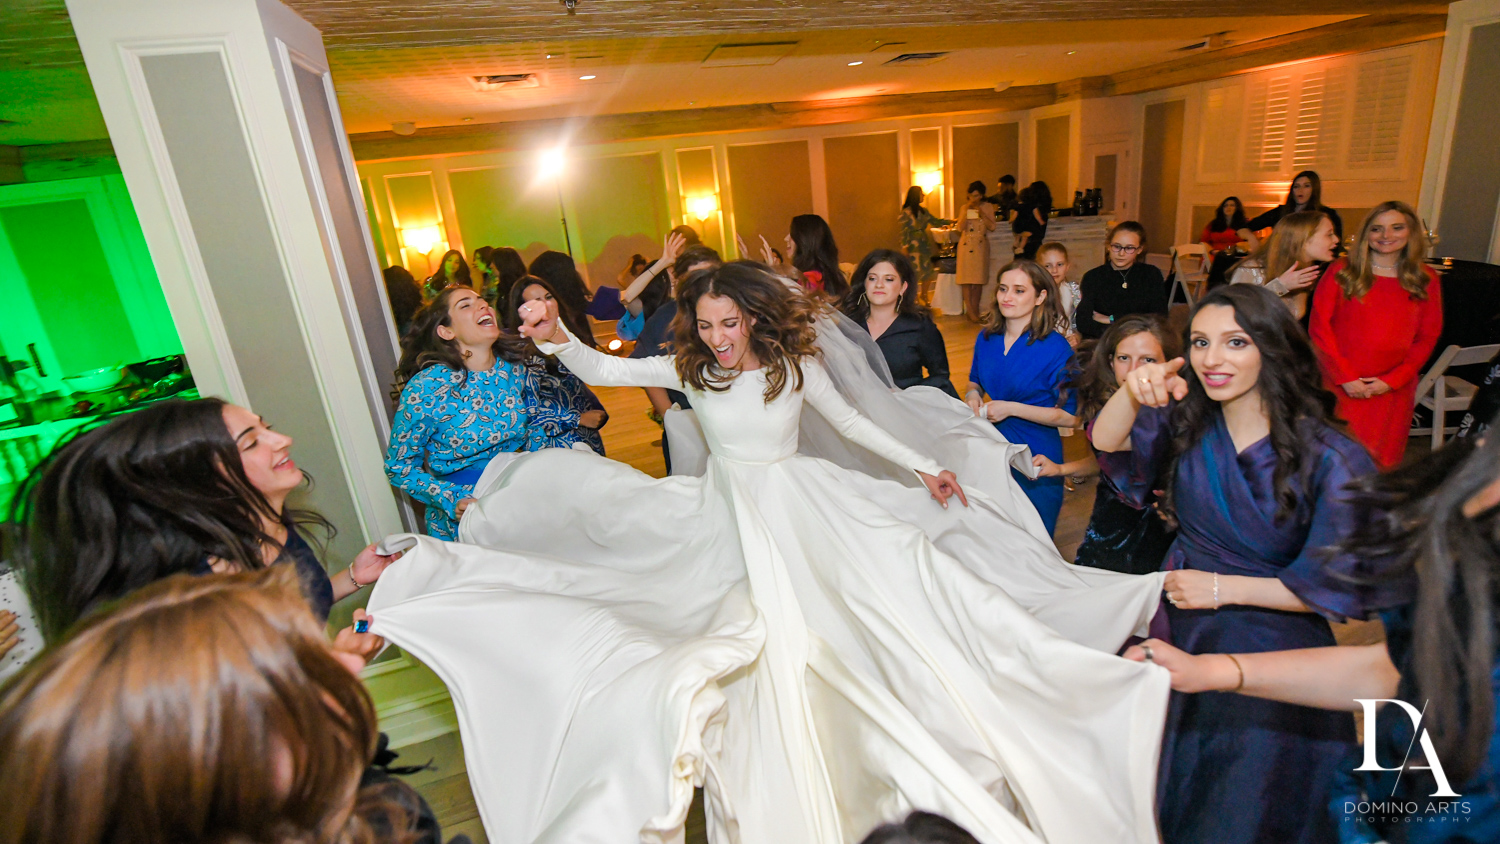 fun reception at Hasidic Jewish Wedding at The Addison in Boca Raton by Domino Arts Photography